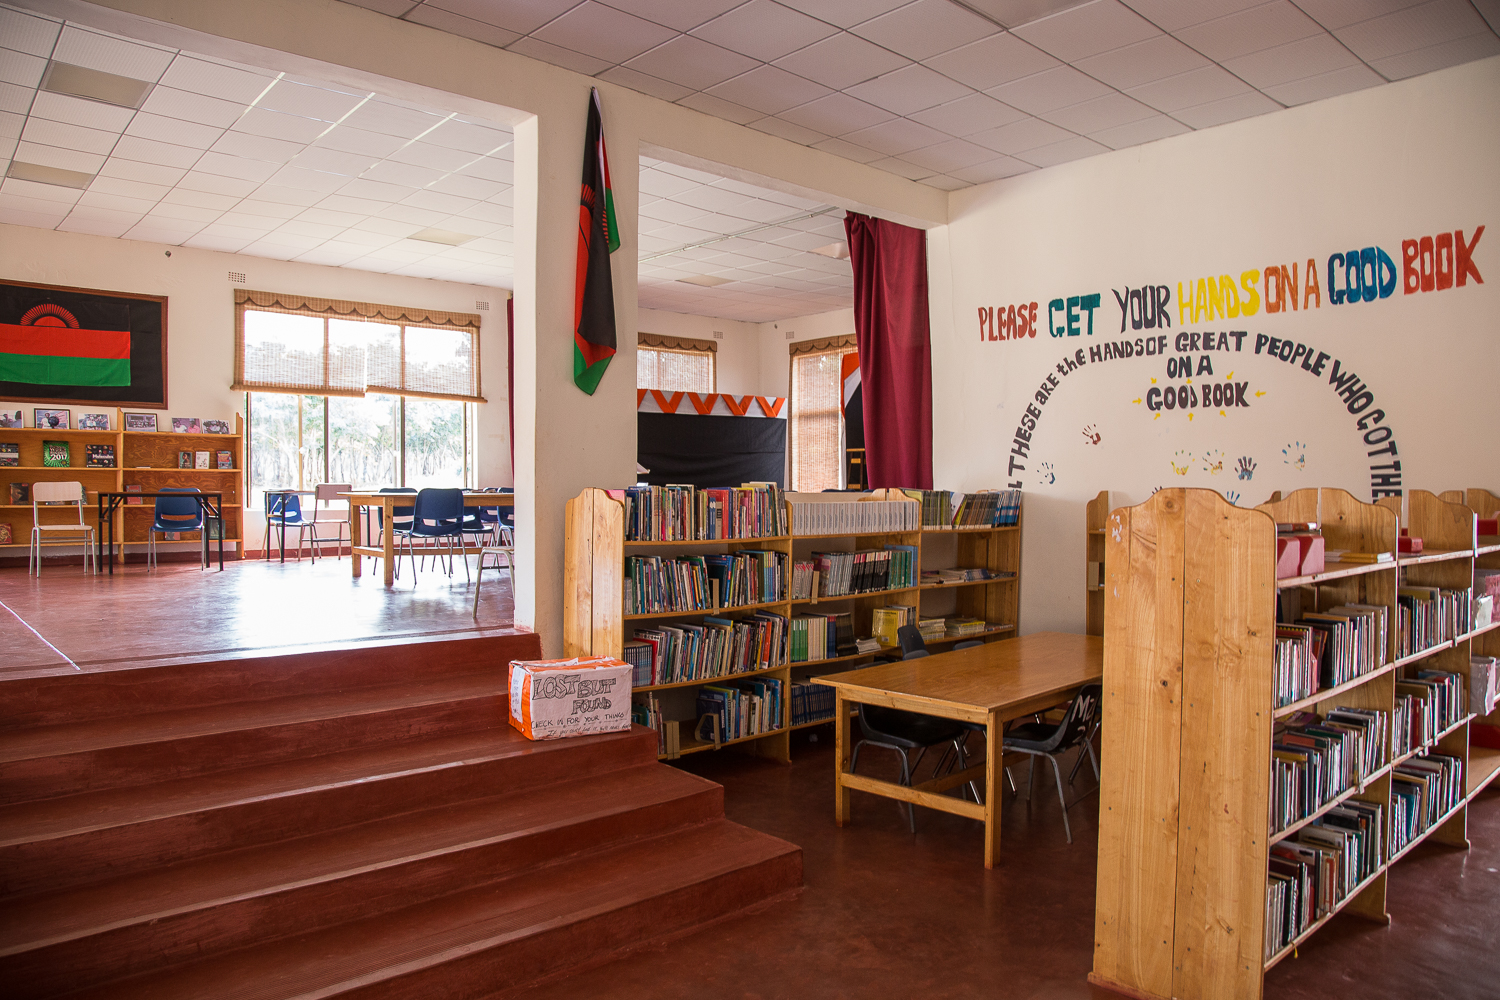 The library at Mzuzu Academy holds the country's largest collections of books by African authors.